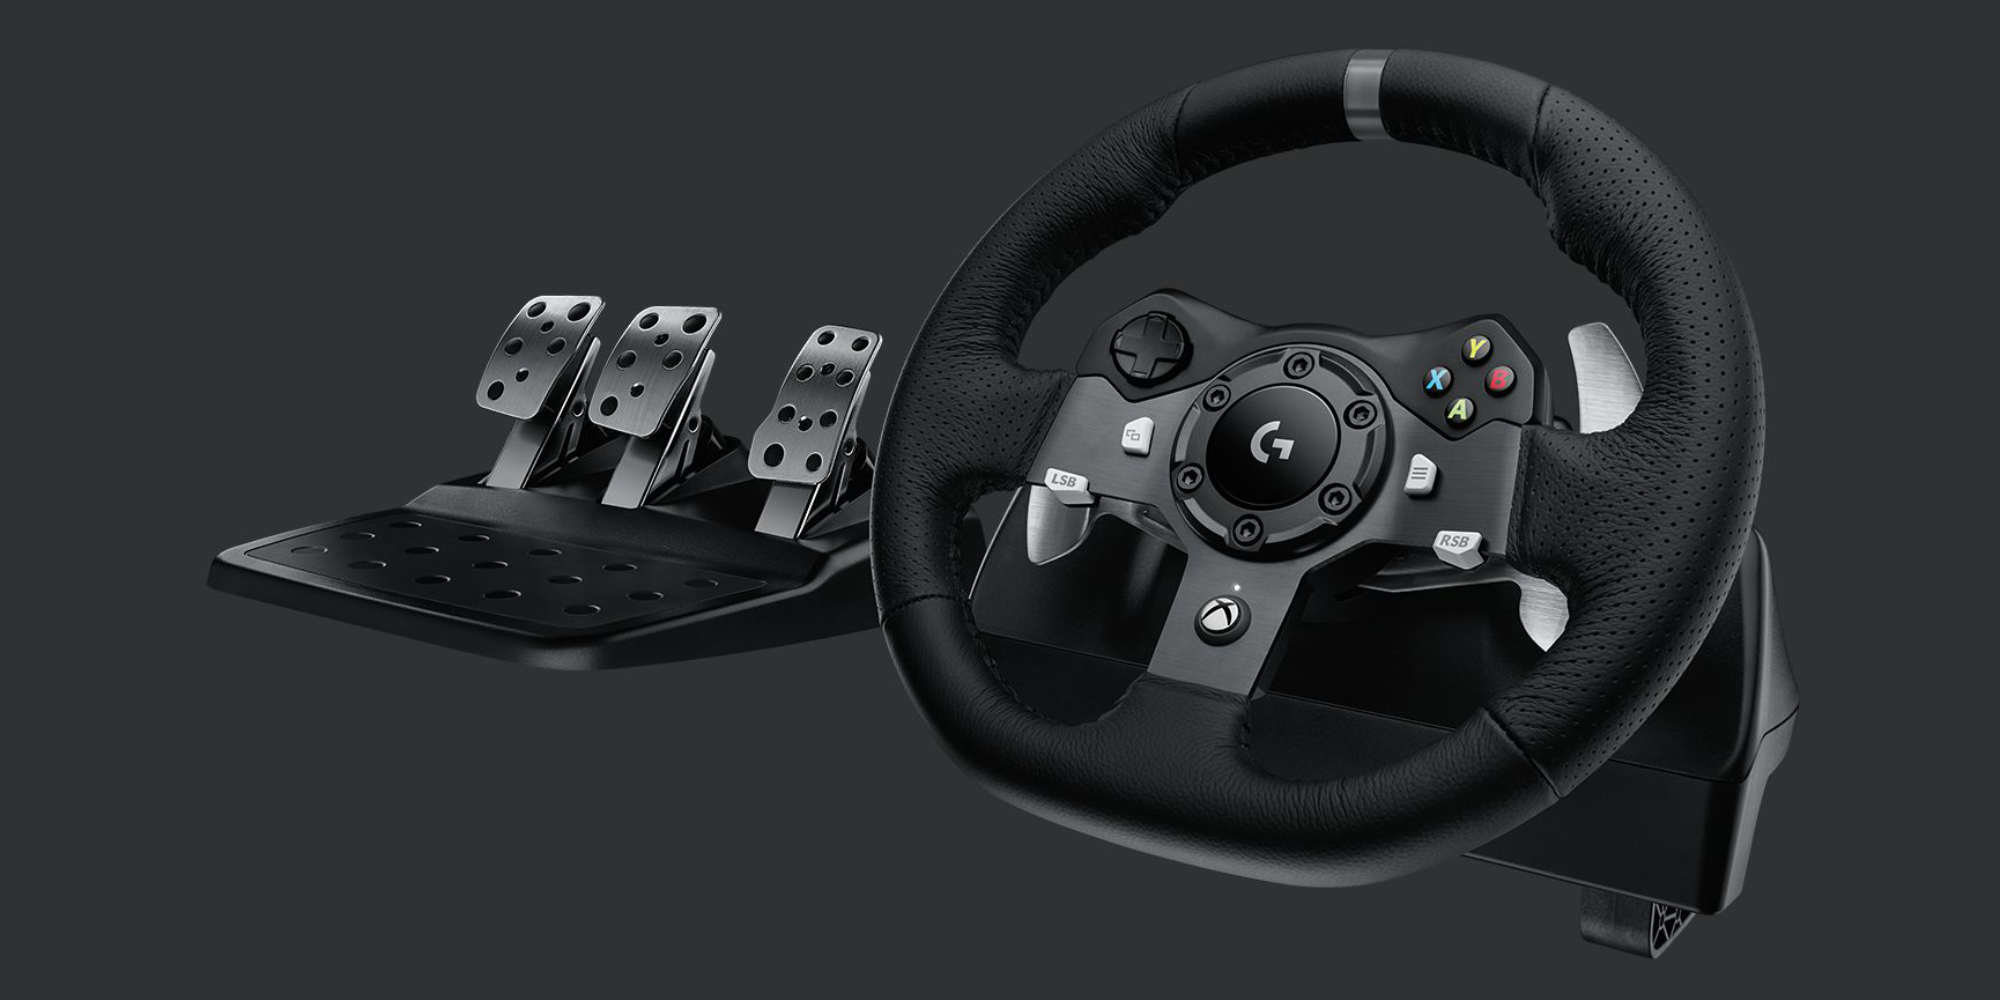 cc94d715ed1 Logitech's Xbox/PS4 Racing Wheels with Pedals are $50 off, from $199  shipped - 9to5Toys